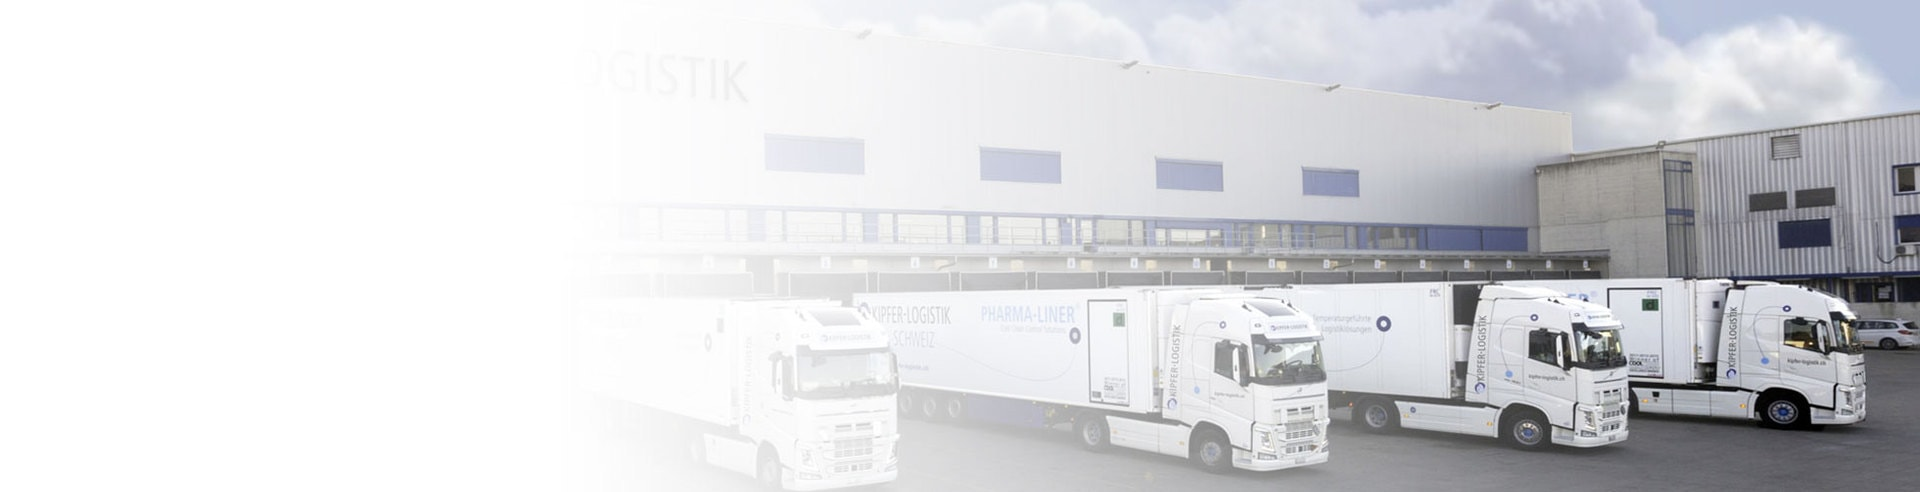 Logistikunternehmen & Supply Chain Management für Pharma Produkte